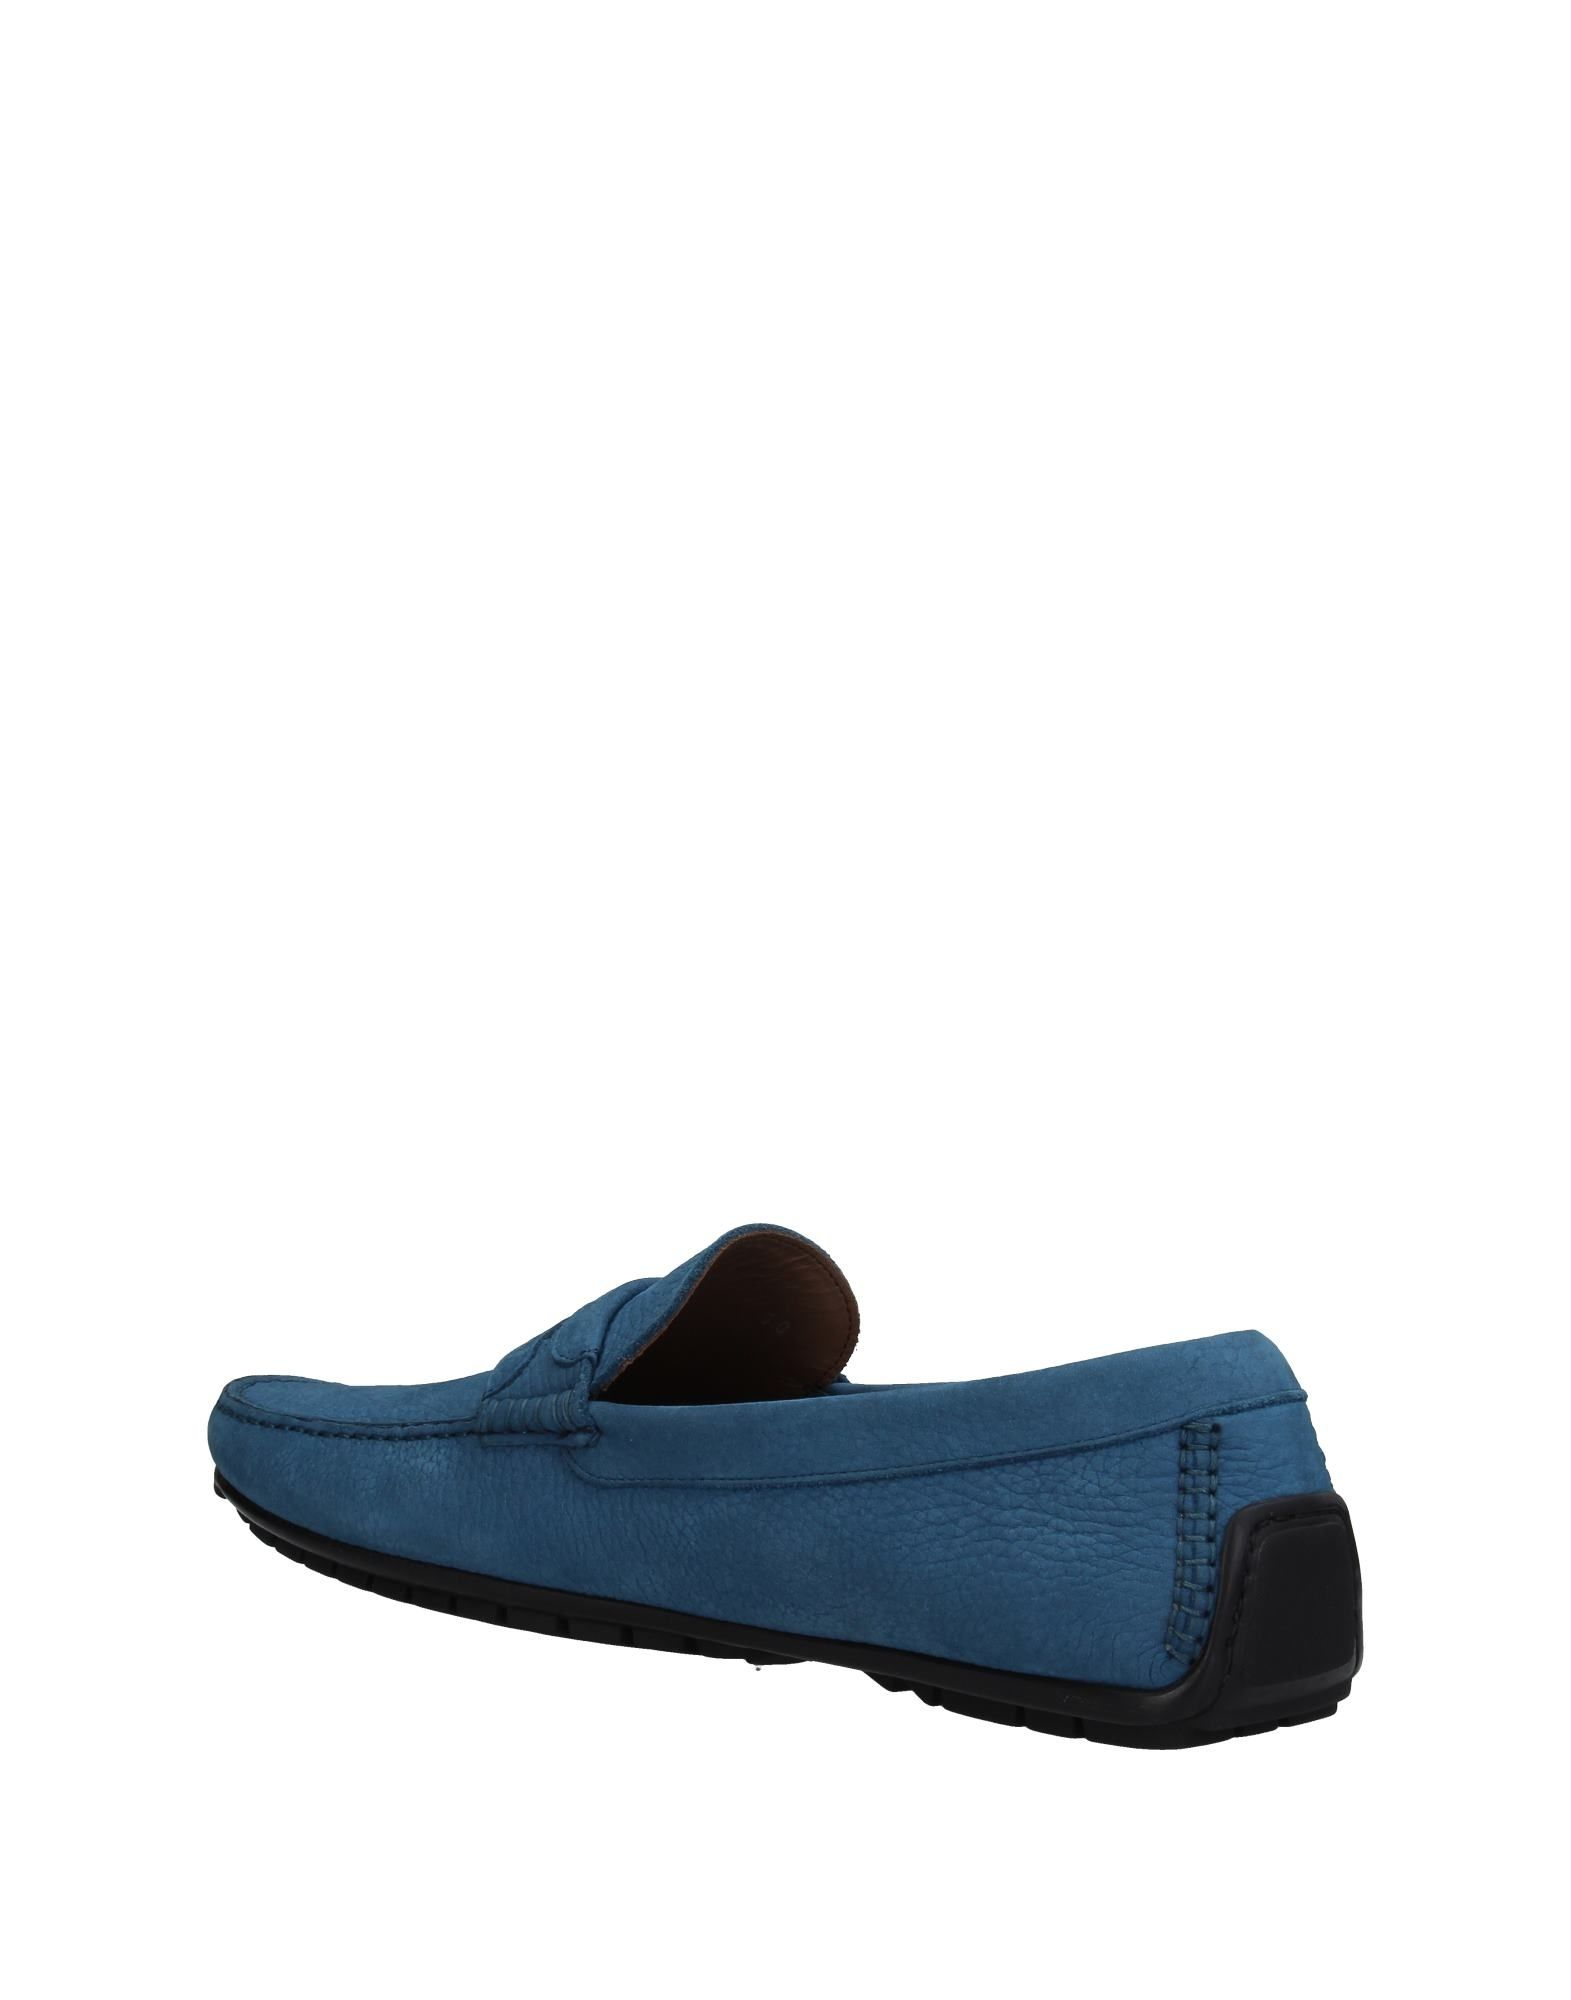 Dolce & Gabbana Loafers - Men Dolce & & & Gabbana Loafers online on  Canada - 11402026HT 3a1435